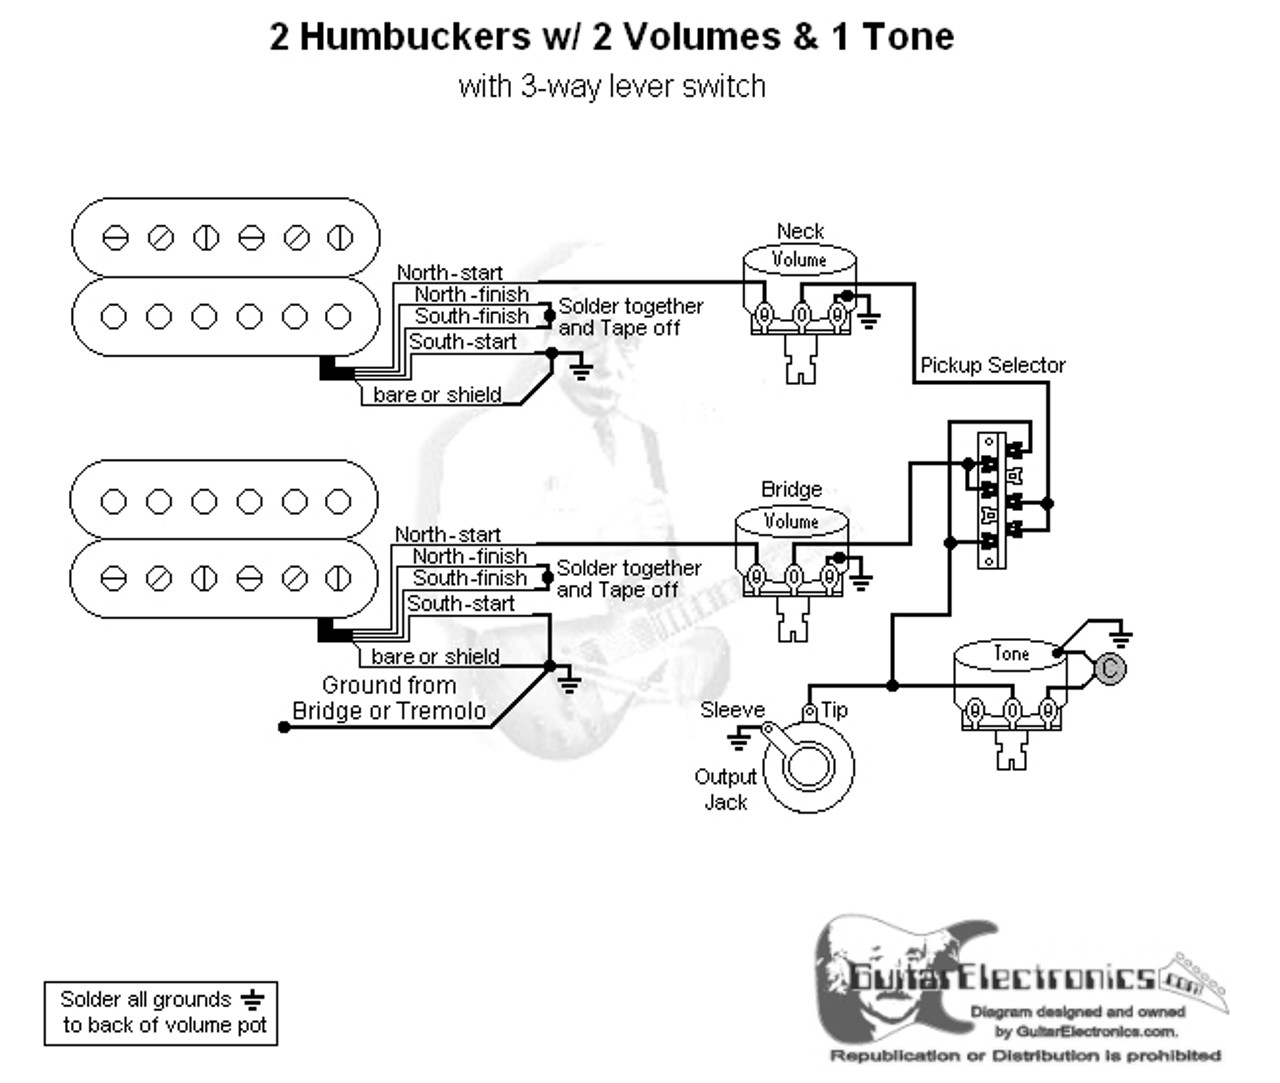 2 humbuckers 3 way lever switch 2 volumes 1 tone 2 humbuckers 1 volume 1 tone 3 way switch coil split 2 humbuckers 3 way toggle switch 2